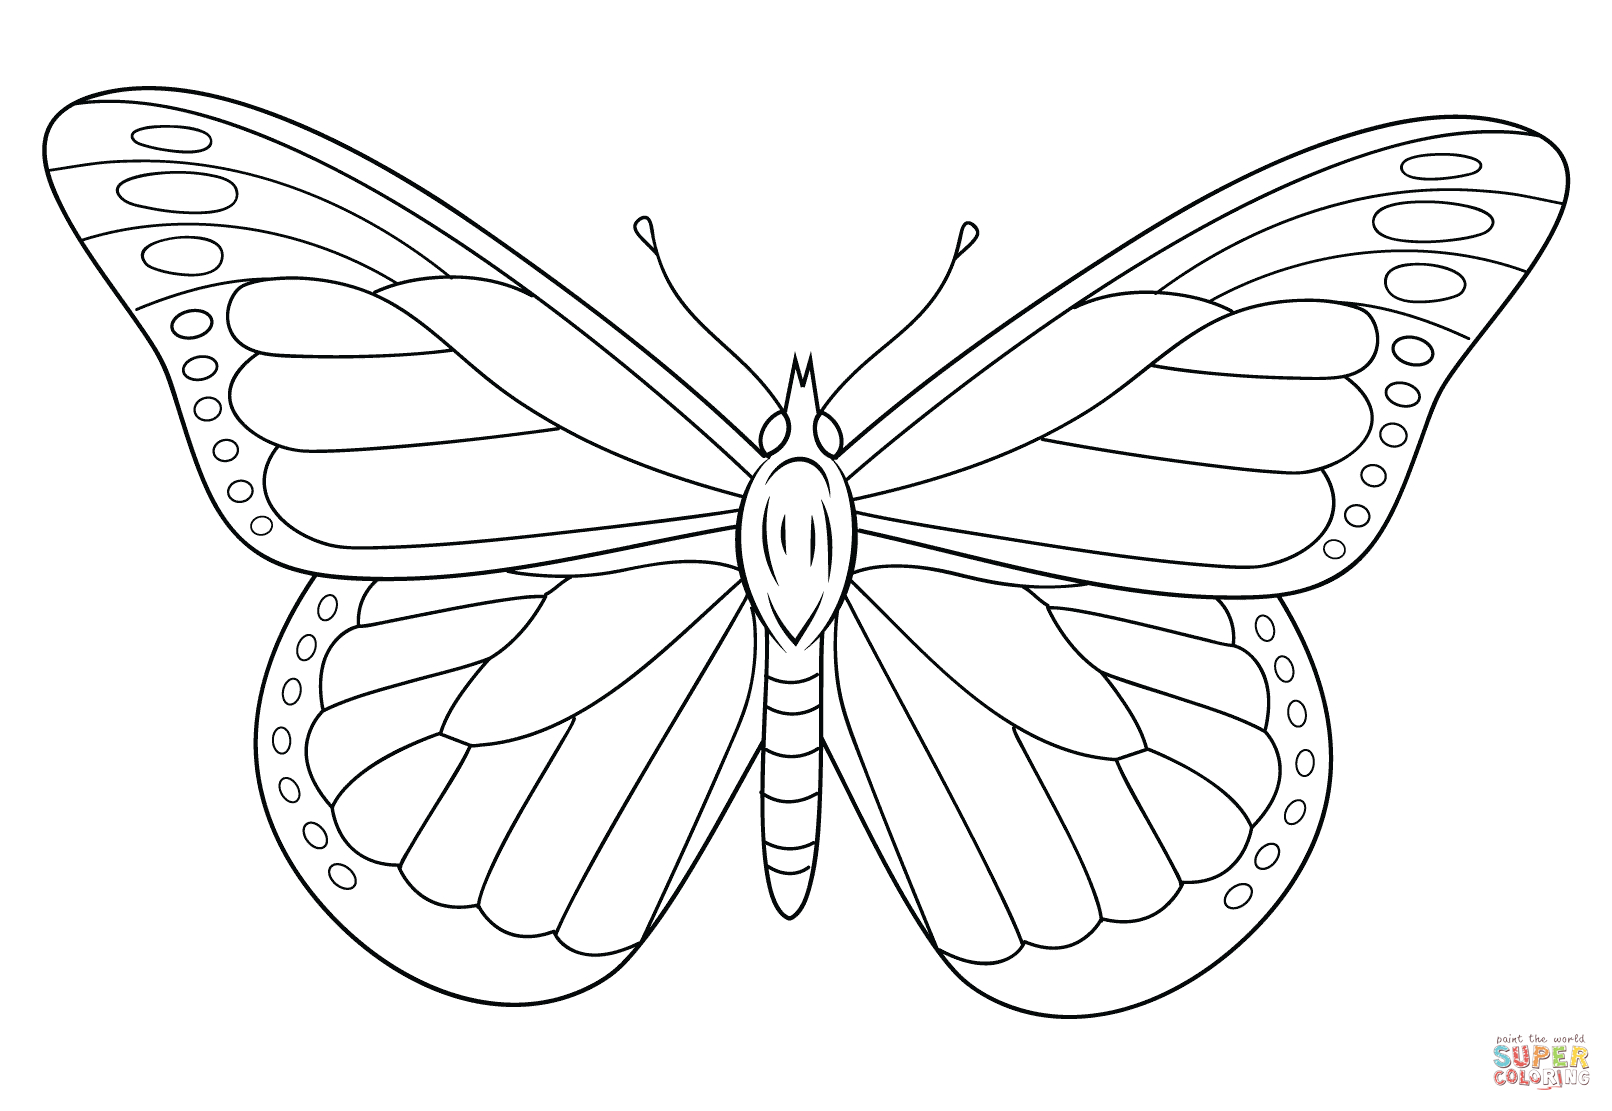 Monarch Butterfly Coloring Page   Free Printable Coloring Pages - Free Printable Butterfly